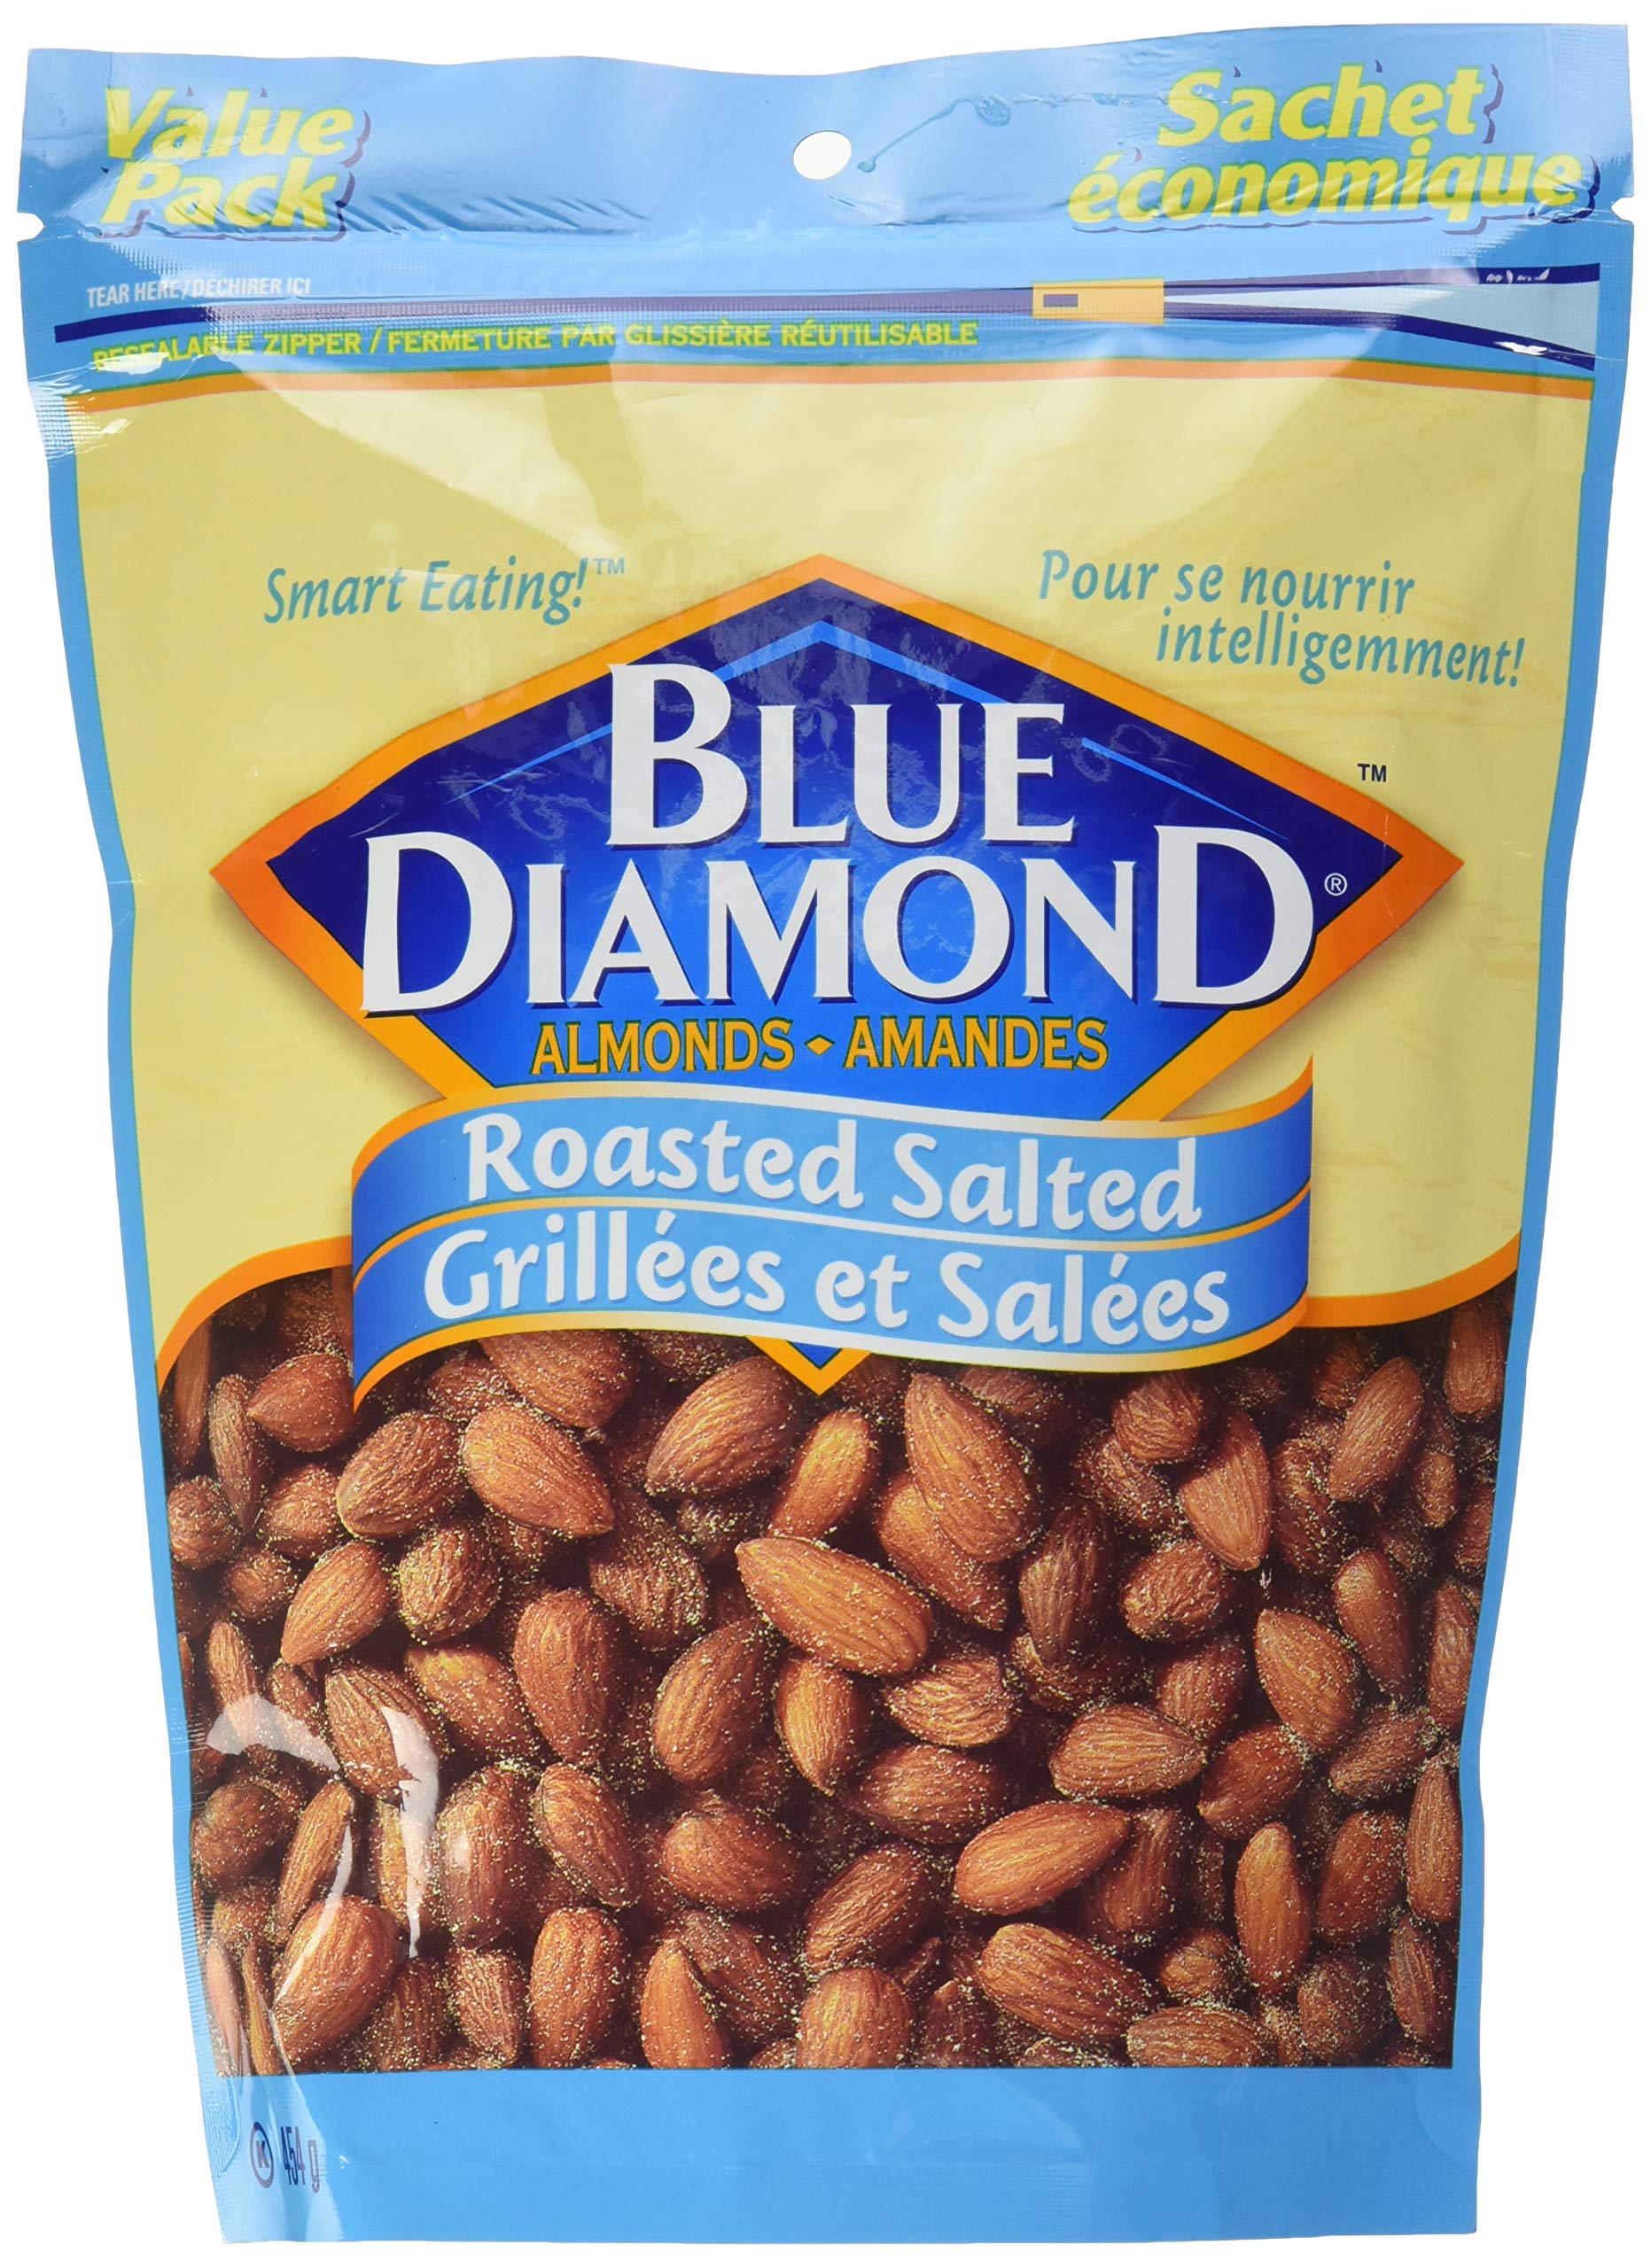 Roasted Salted Almonds 5 lbs. | eBay